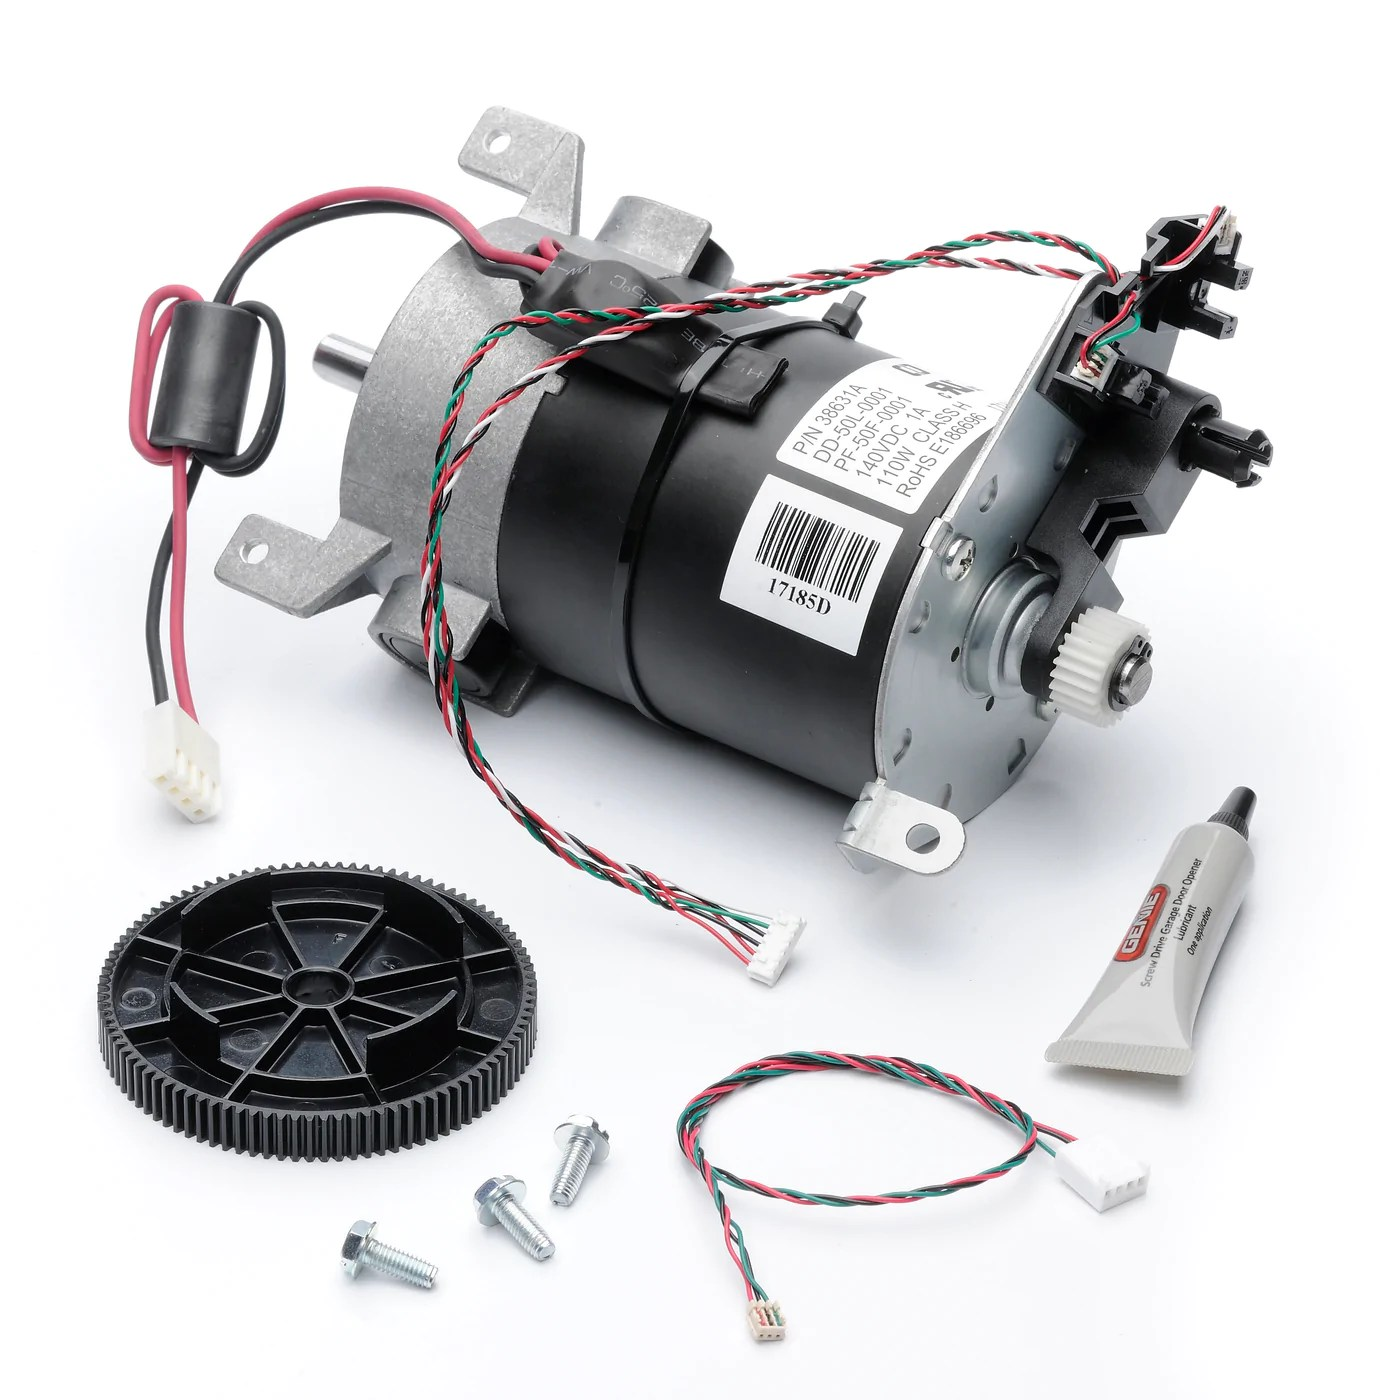 small resolution of genie garage door opener motor assembly dual encoder dc screw drive replacement part